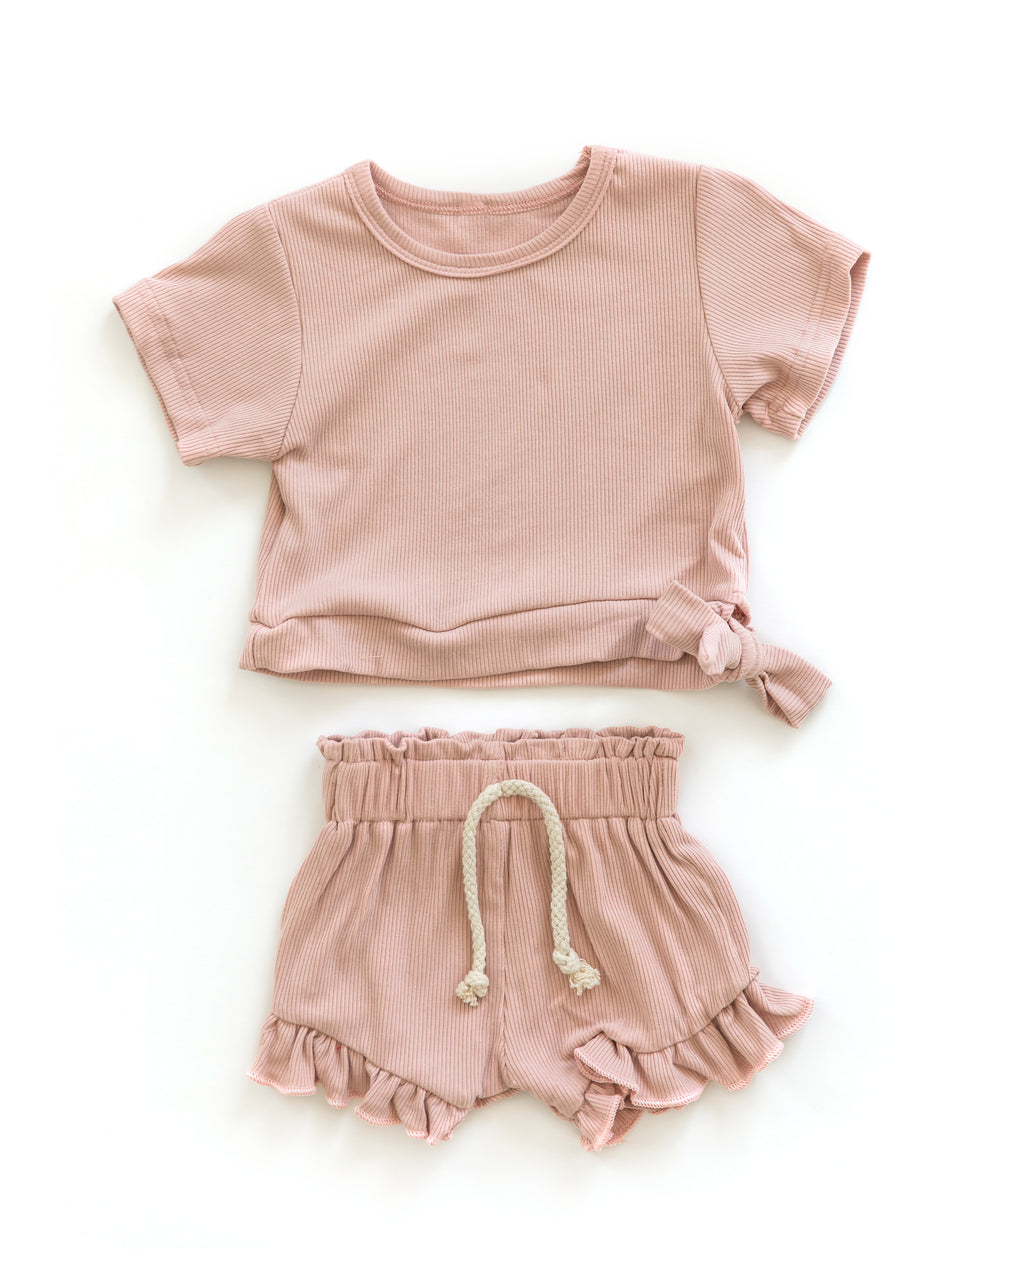 Tia Outfit in Dusty Pink - Reverie Threads